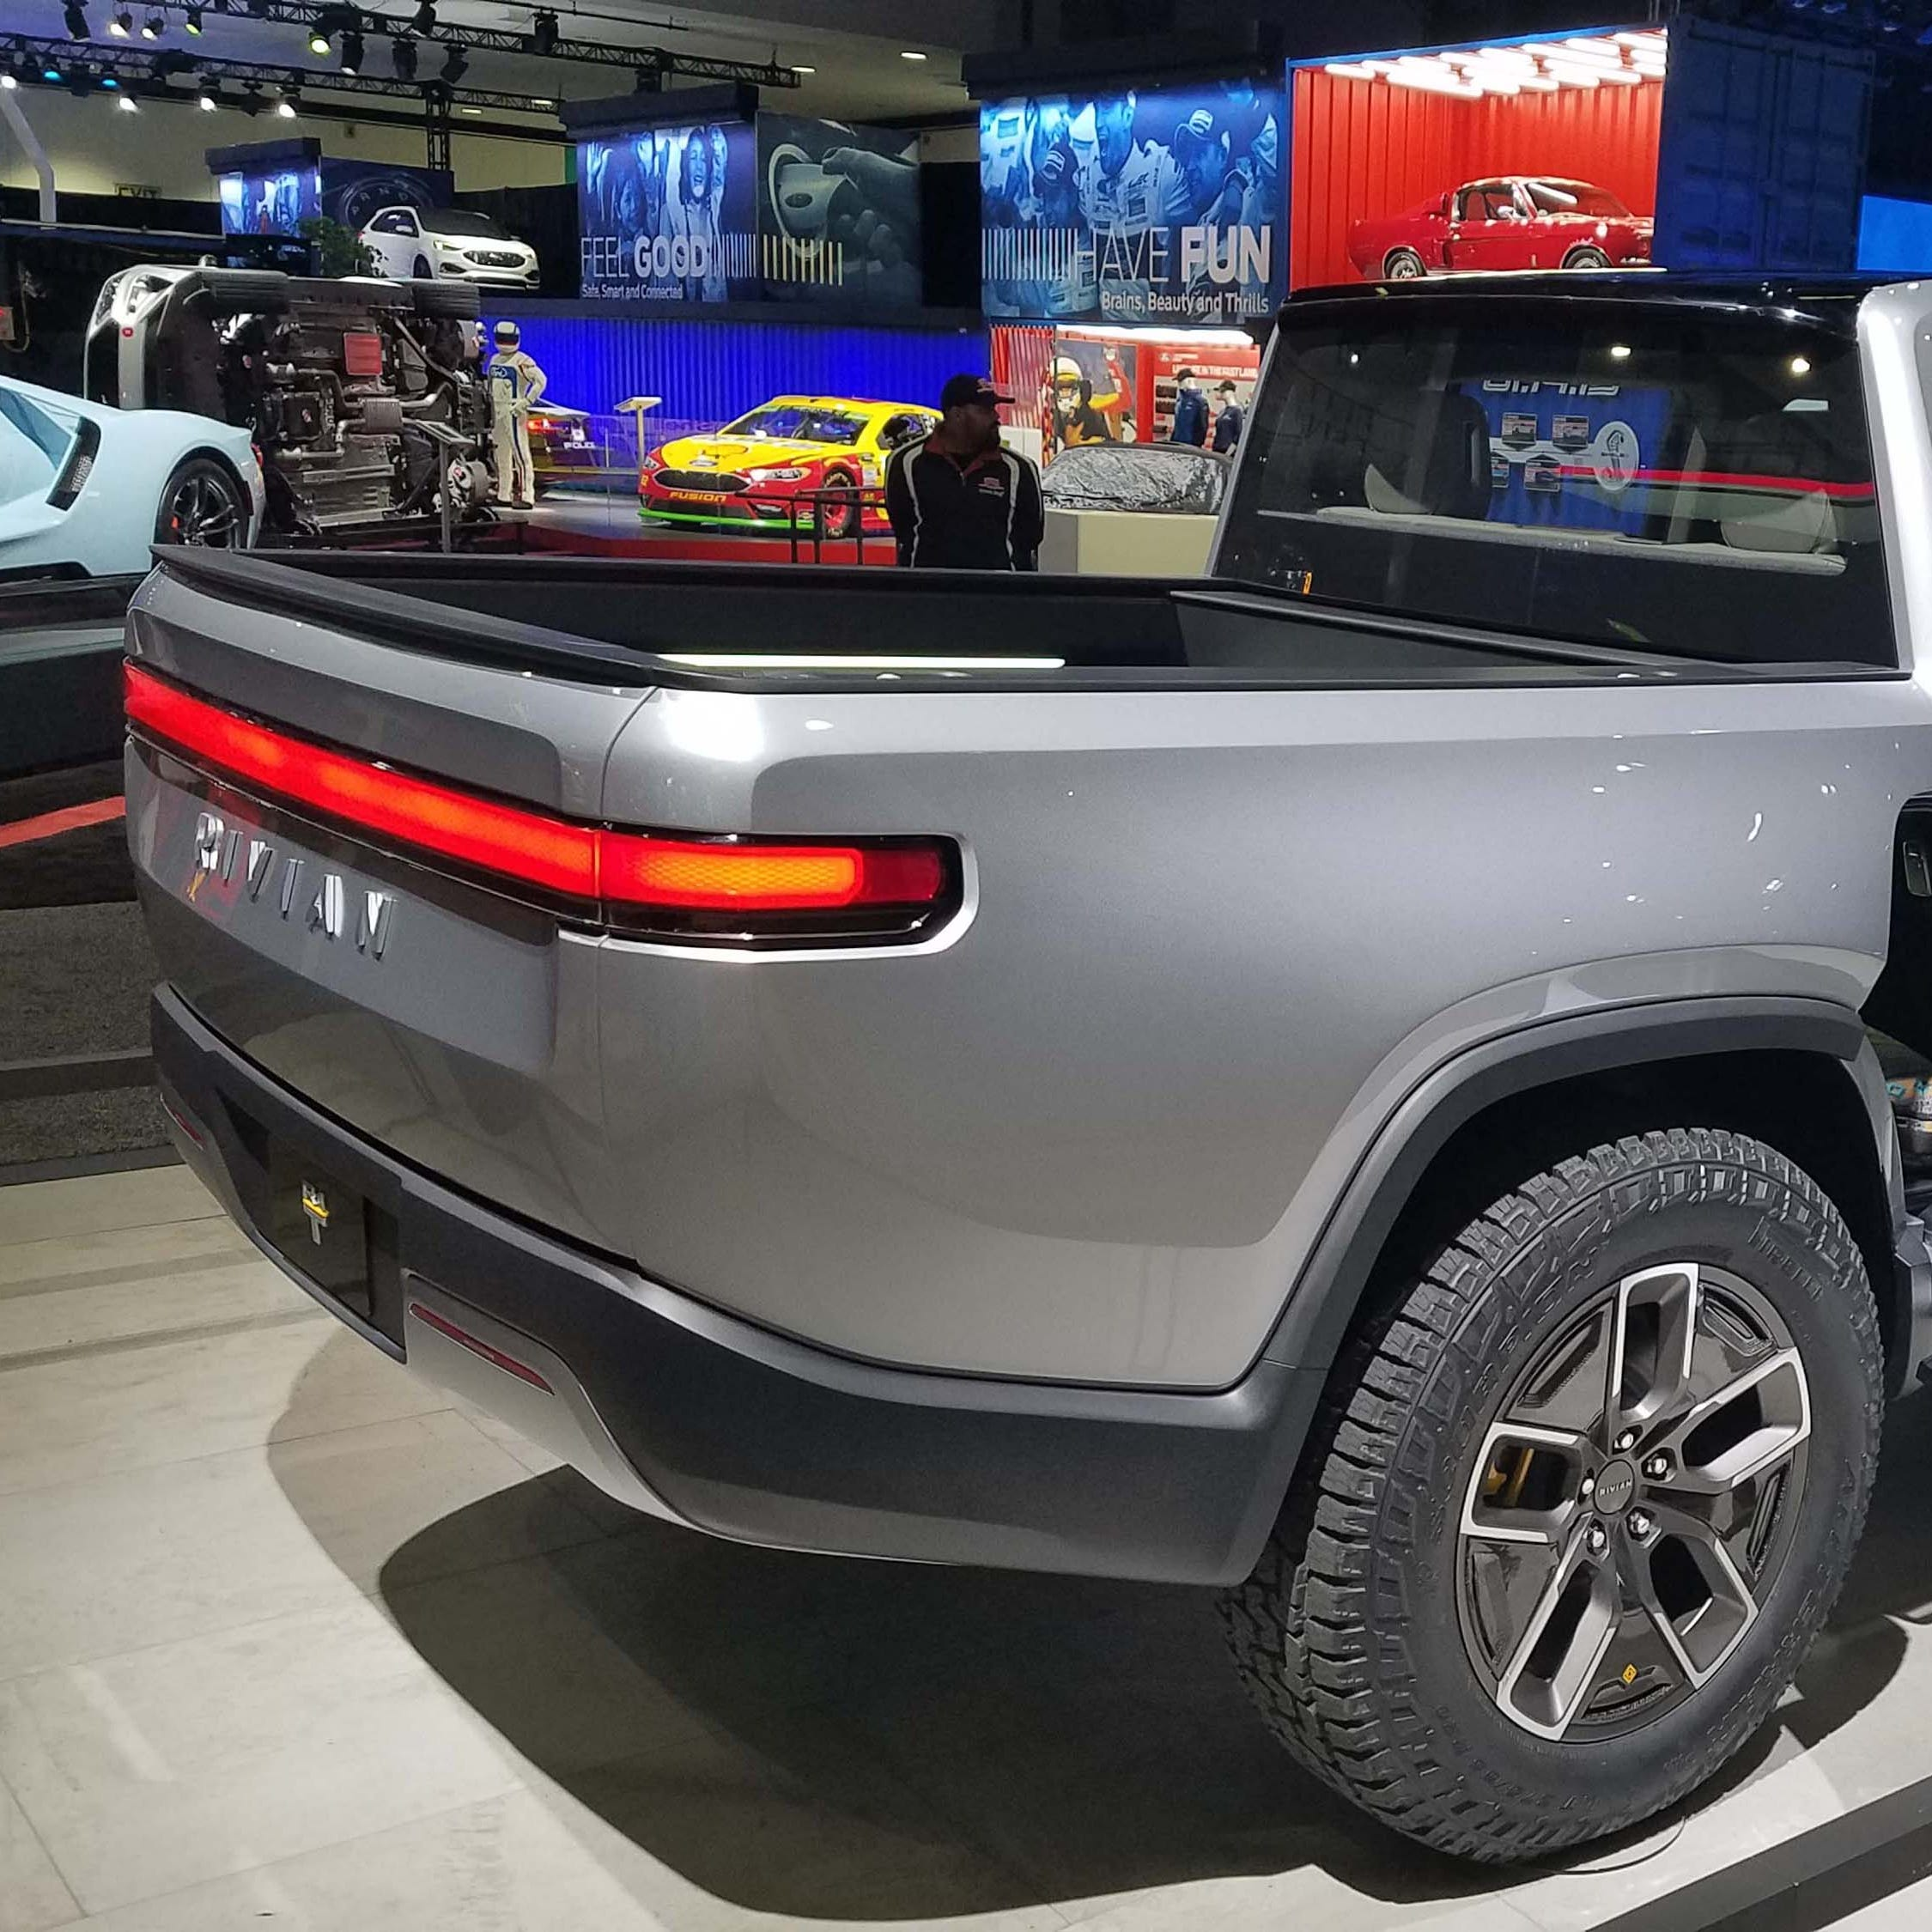 Ford invests $500M in Rivian; companies plan electric vehicle